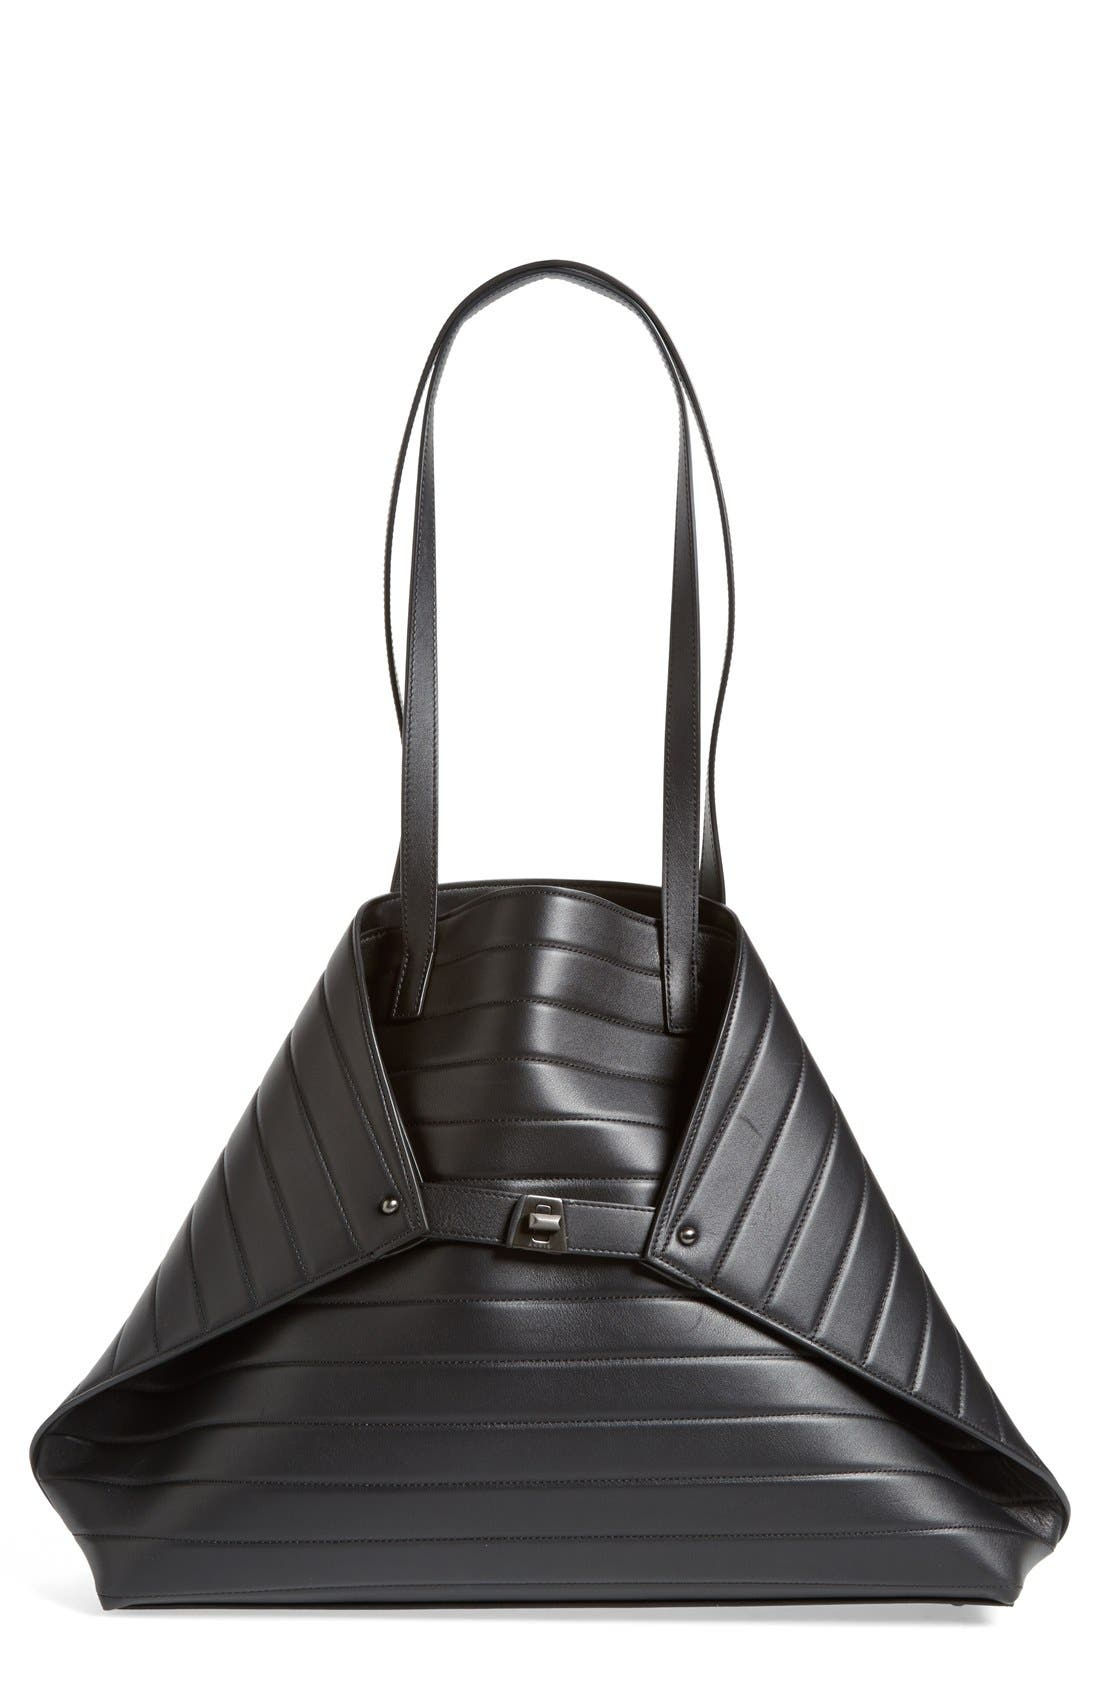 Alternate Image 1 Selected - Akris 'Medium AI' Quilted Leather Shoulder Tote